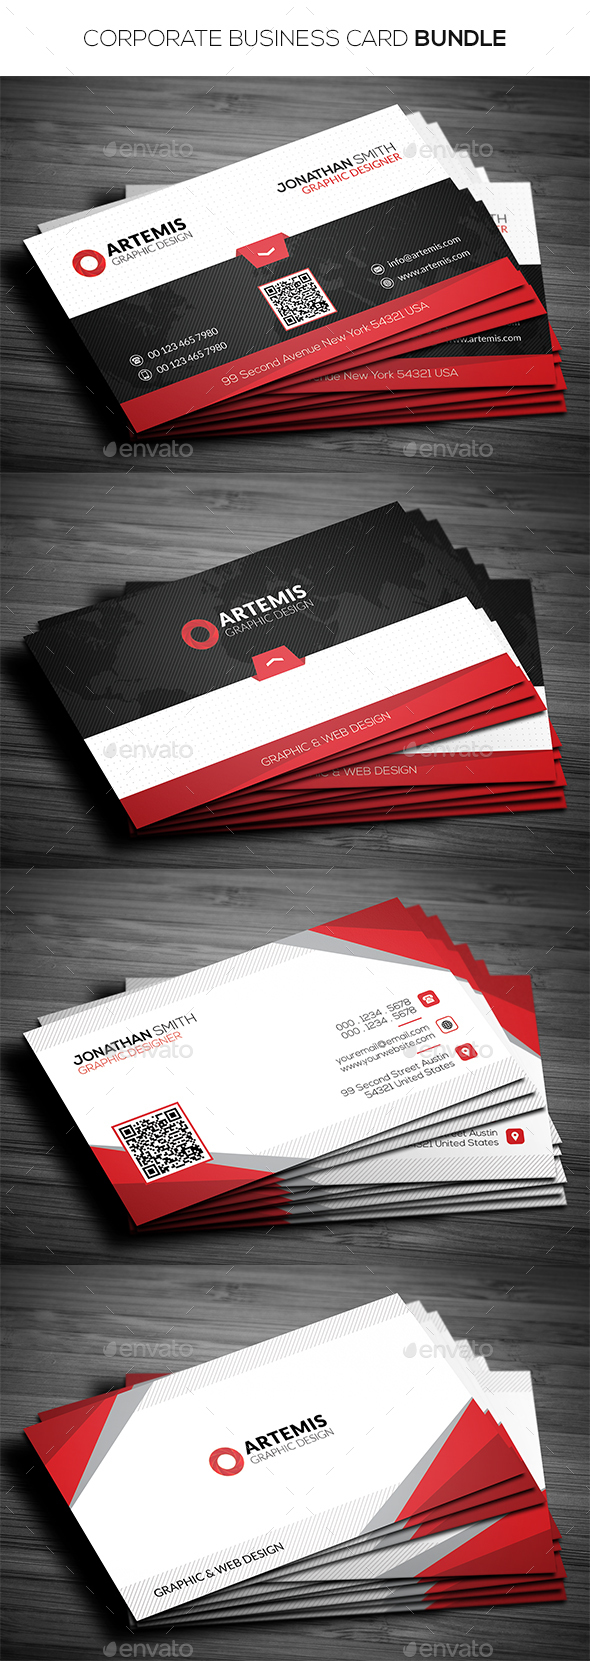 2 in 1 Corporate Business Card Bundle  - Corporate Business Cards